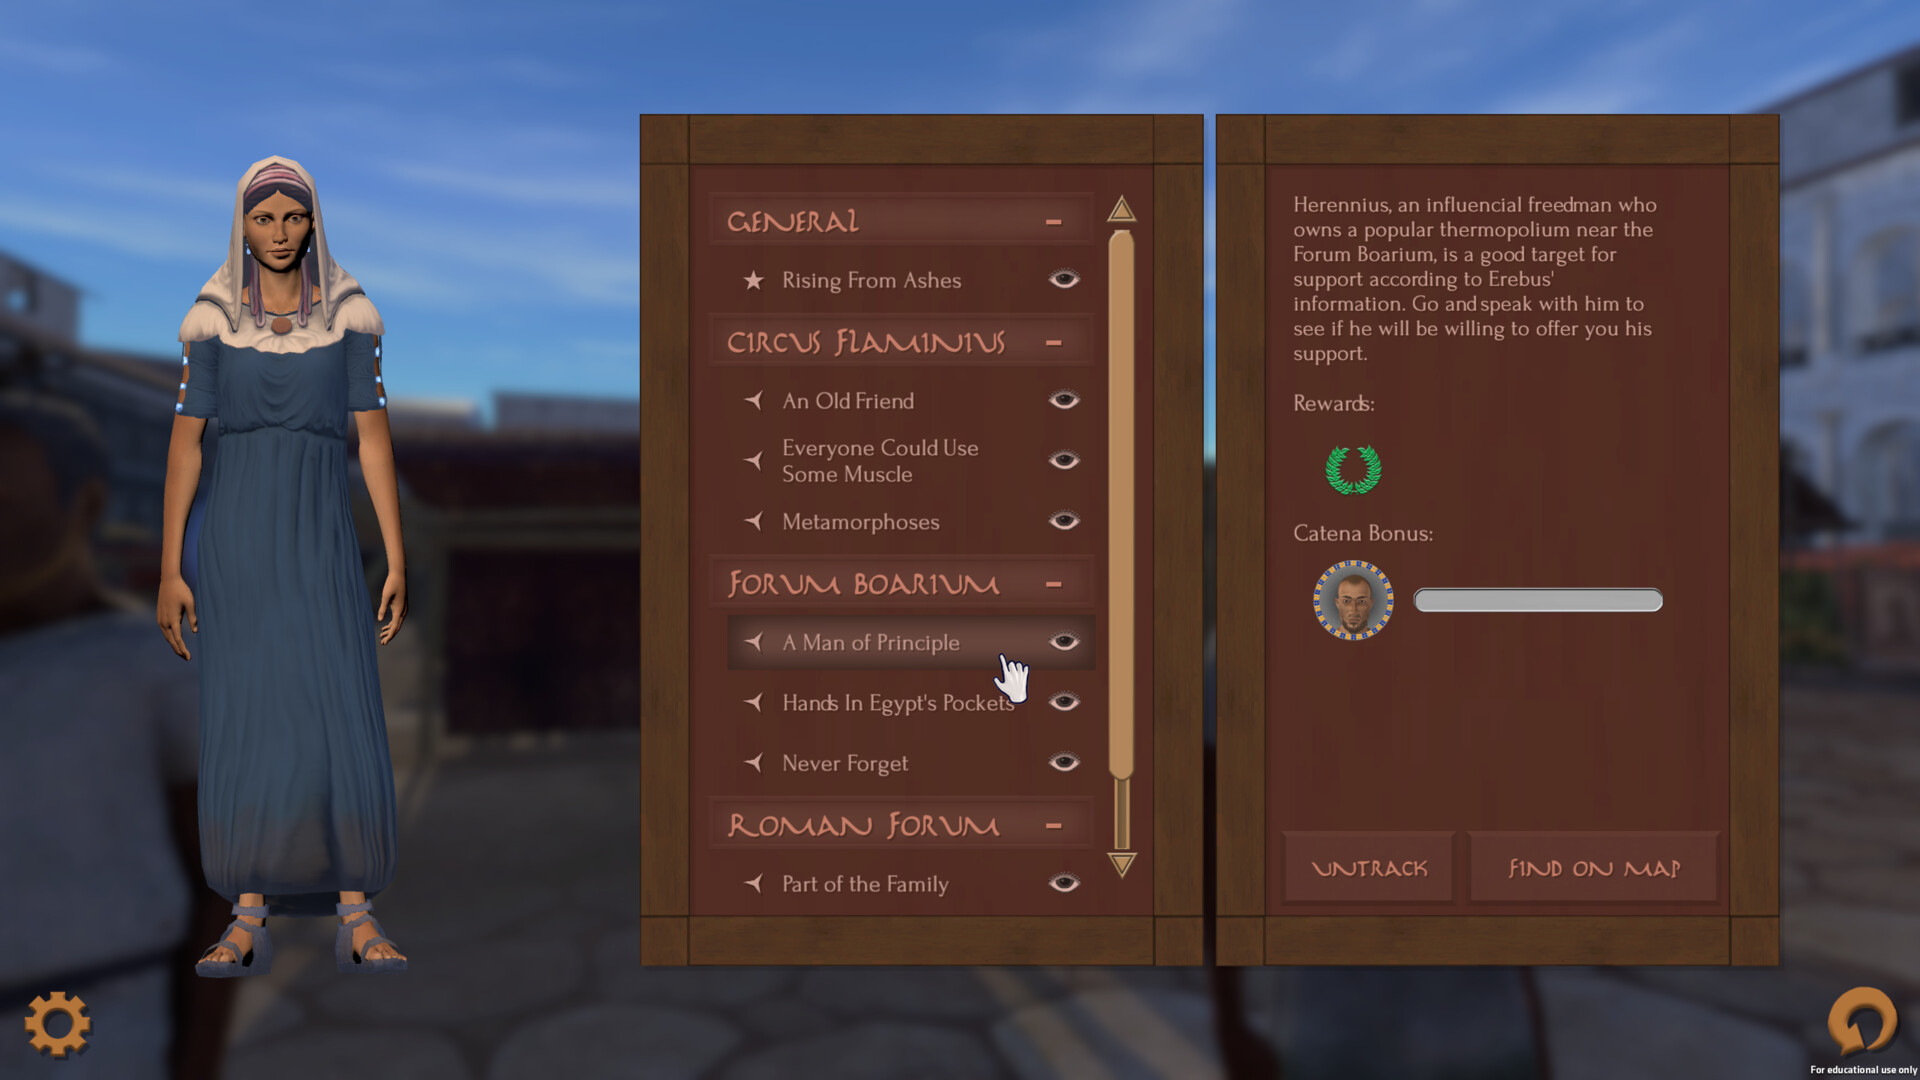 In the player's codex information about places, people, and events, they have encountered is collected, as well as current objectives. This is stylized as a wax tablet, common in the Roman empire as a portable and reusable writing surface.